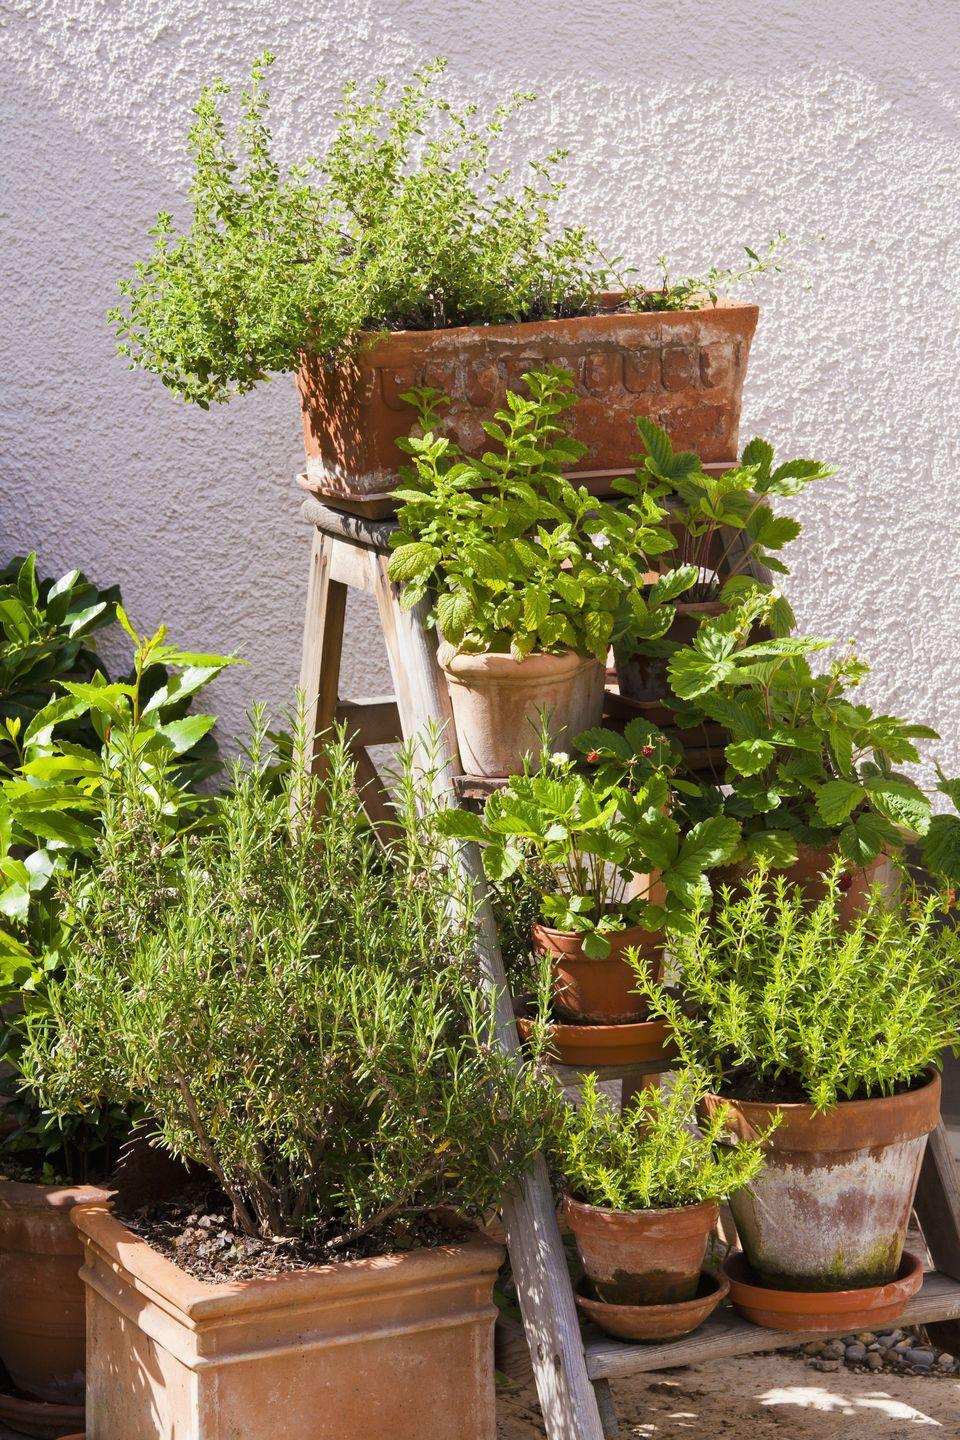 <p>If you have a wooden ladder that you no longer need, dress it up with a garden bed and an arrangement of potted plants. </p>